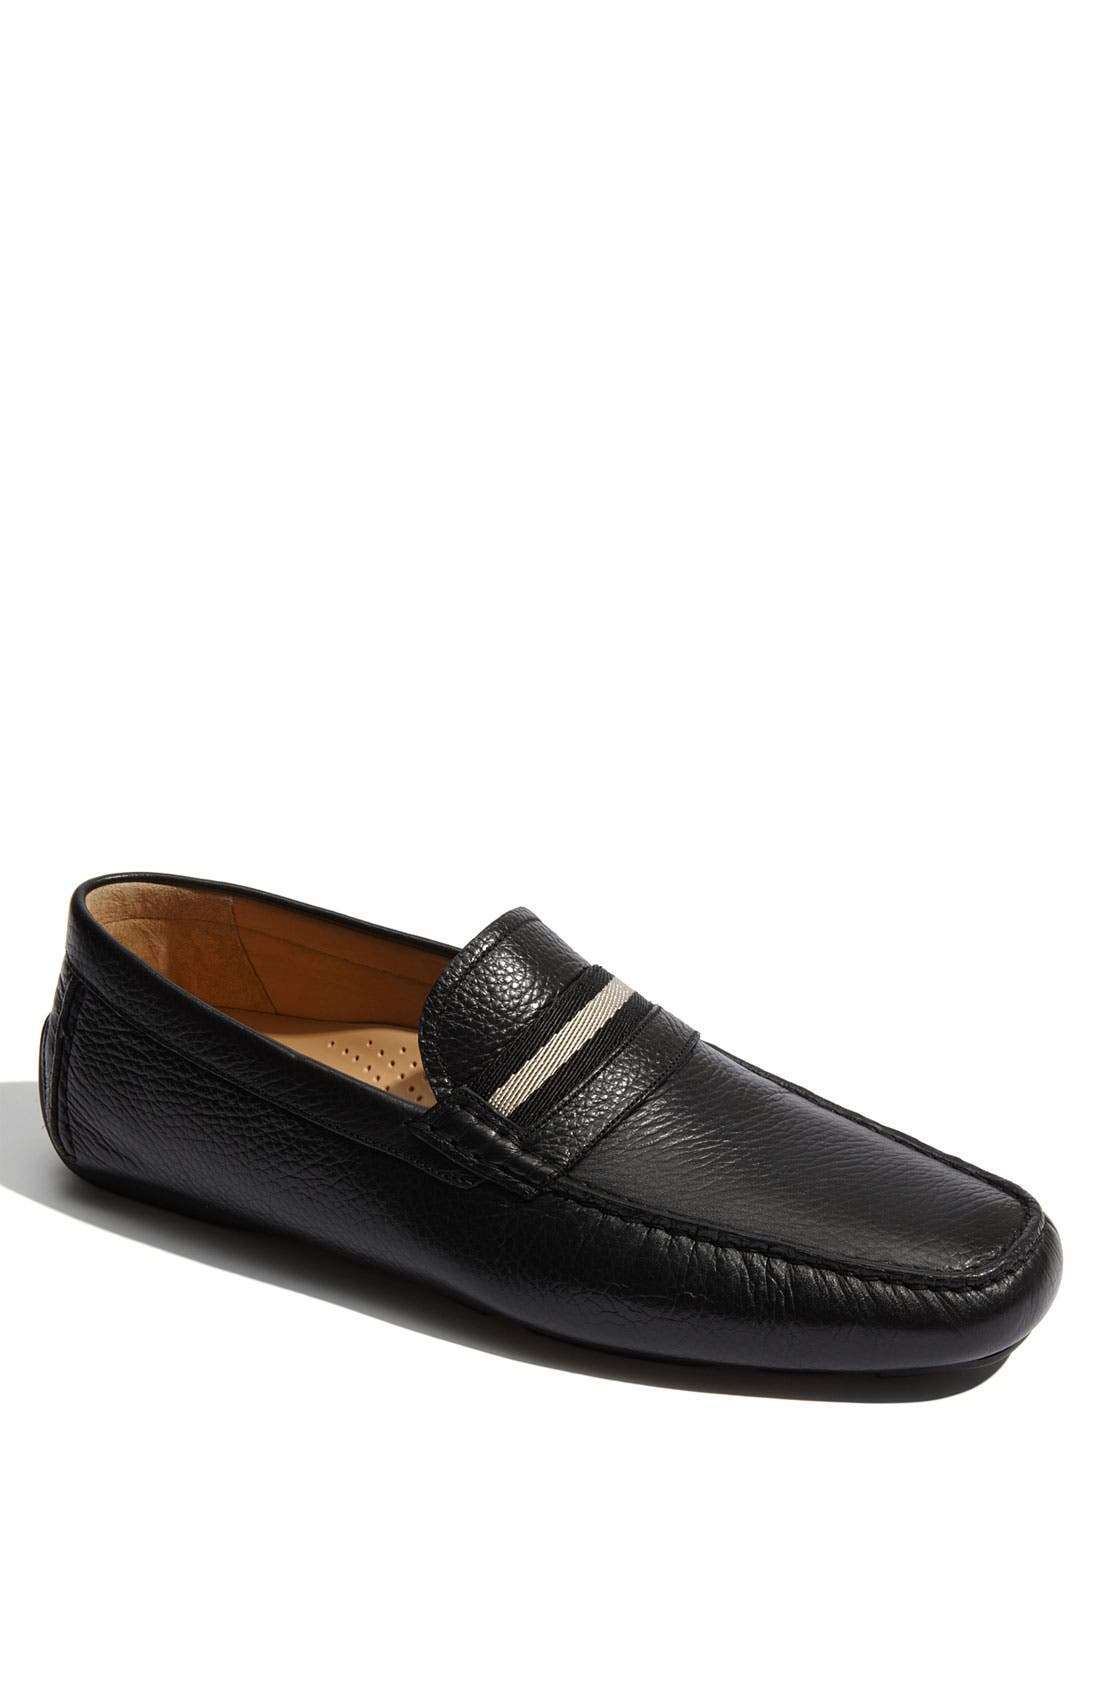 Main Image - Bally 'Wabler' Loafer (Men)